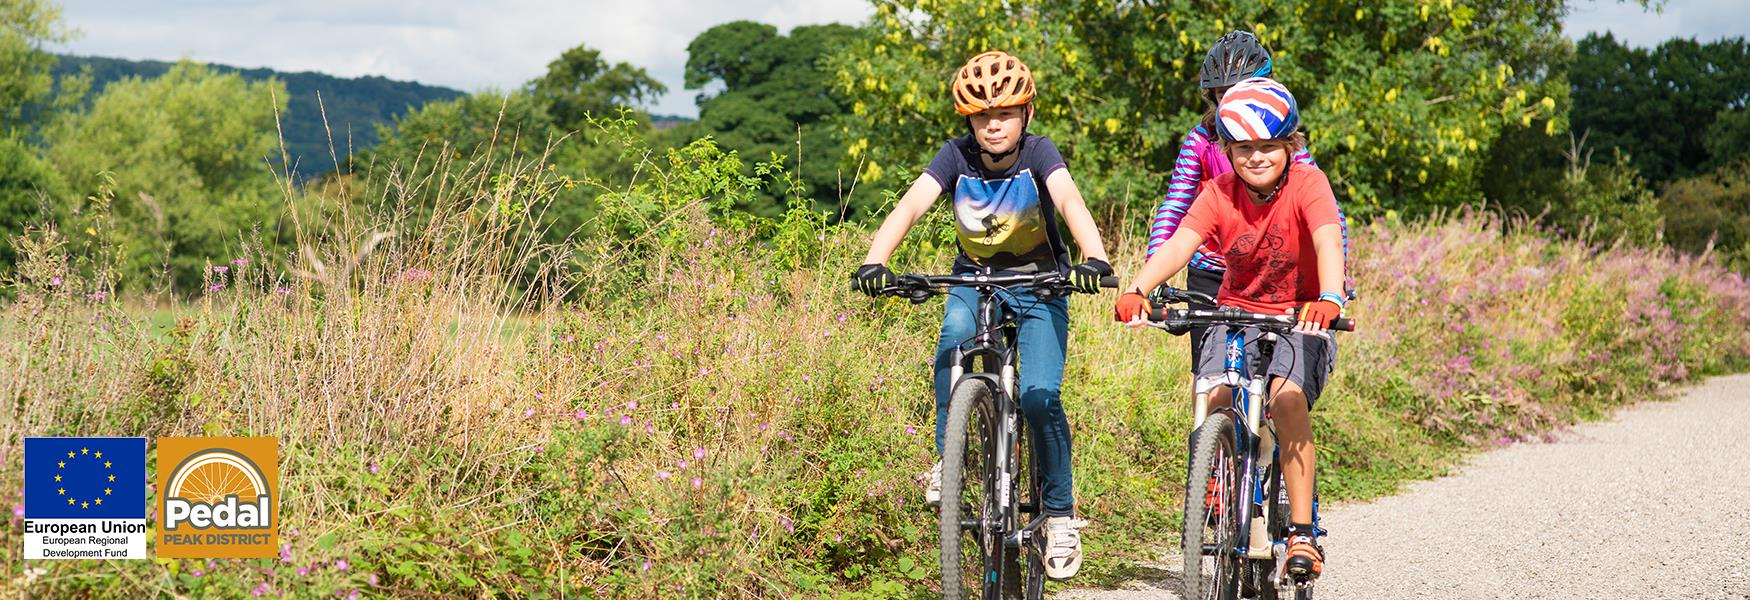 Discover Matlock on two wheels